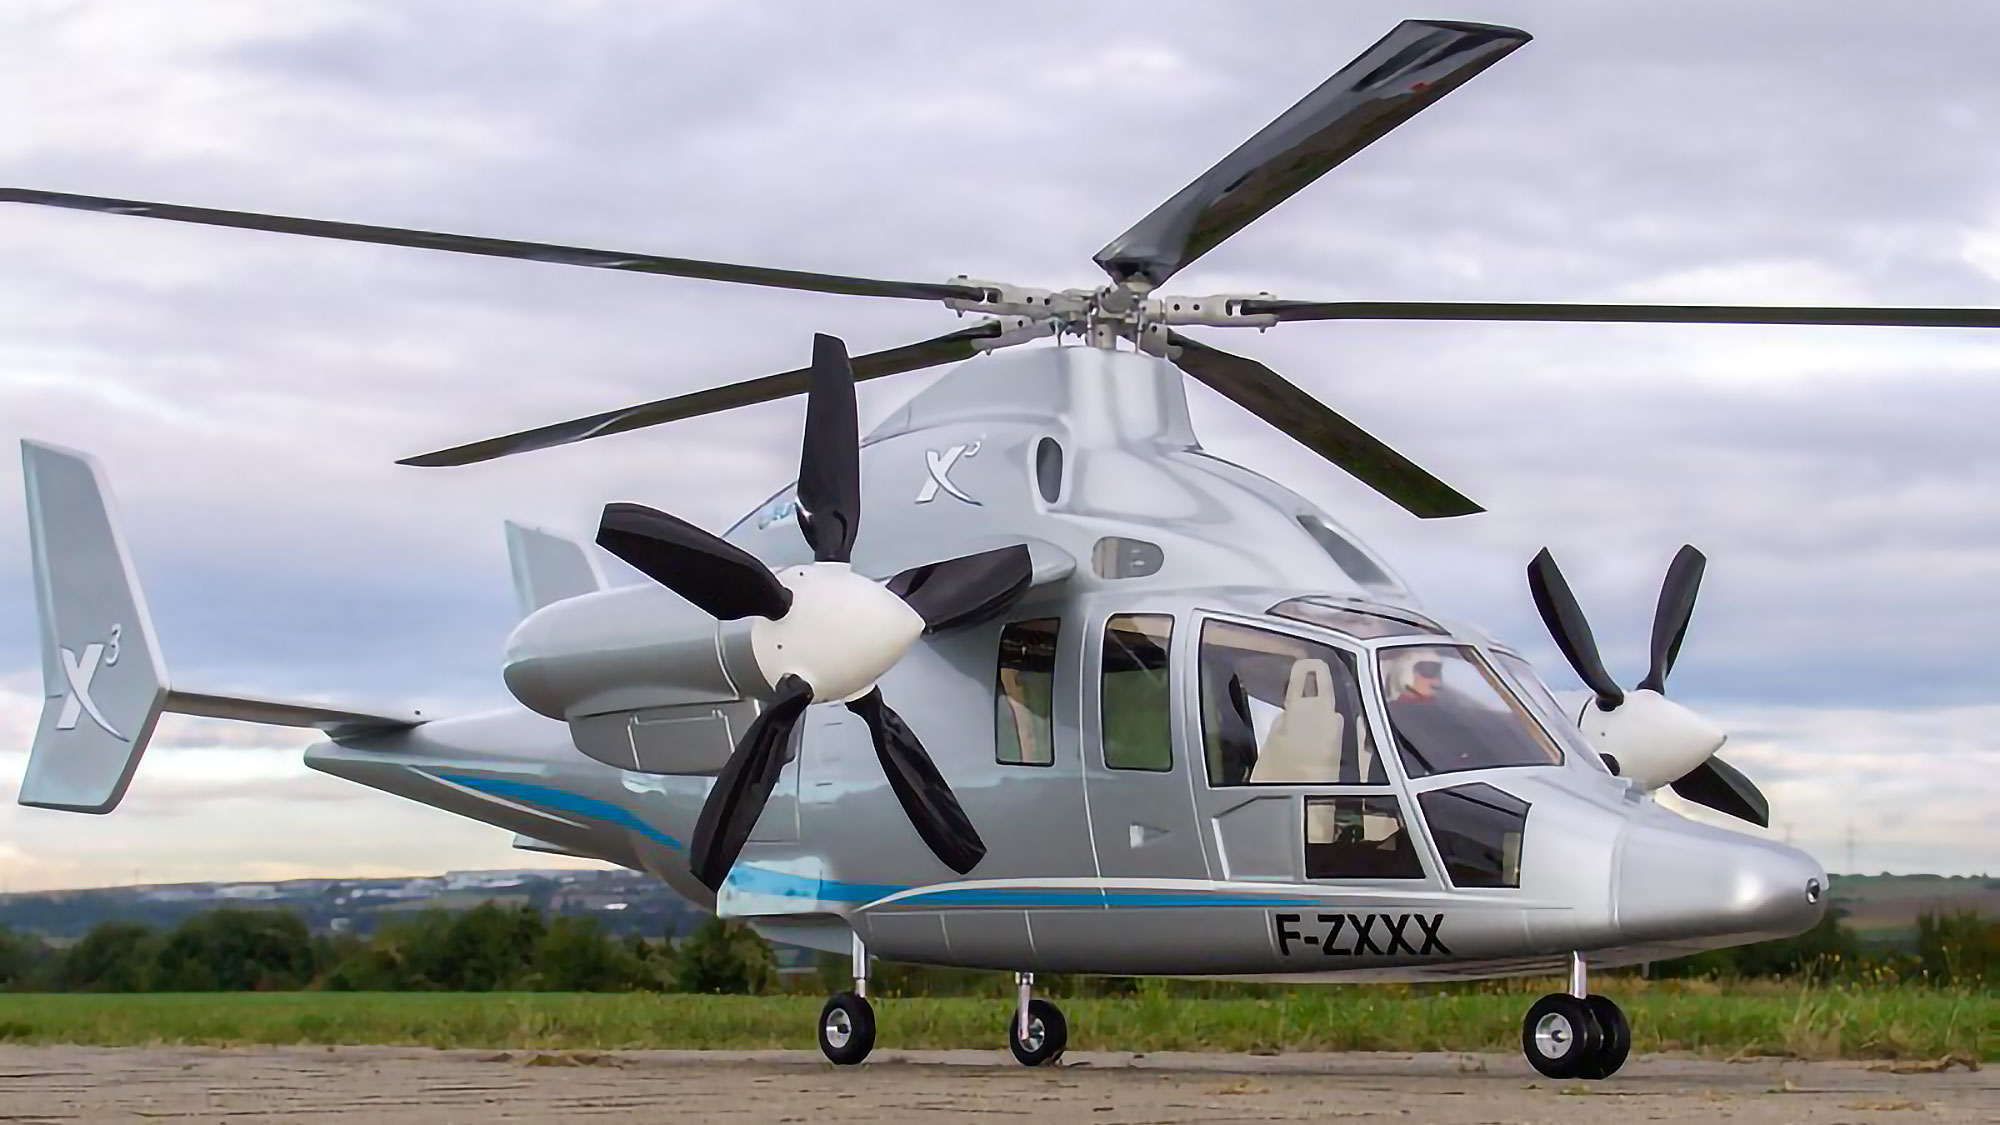 Rc Scale Model Version Of The Eurocopter X3 Is Hybrid Of